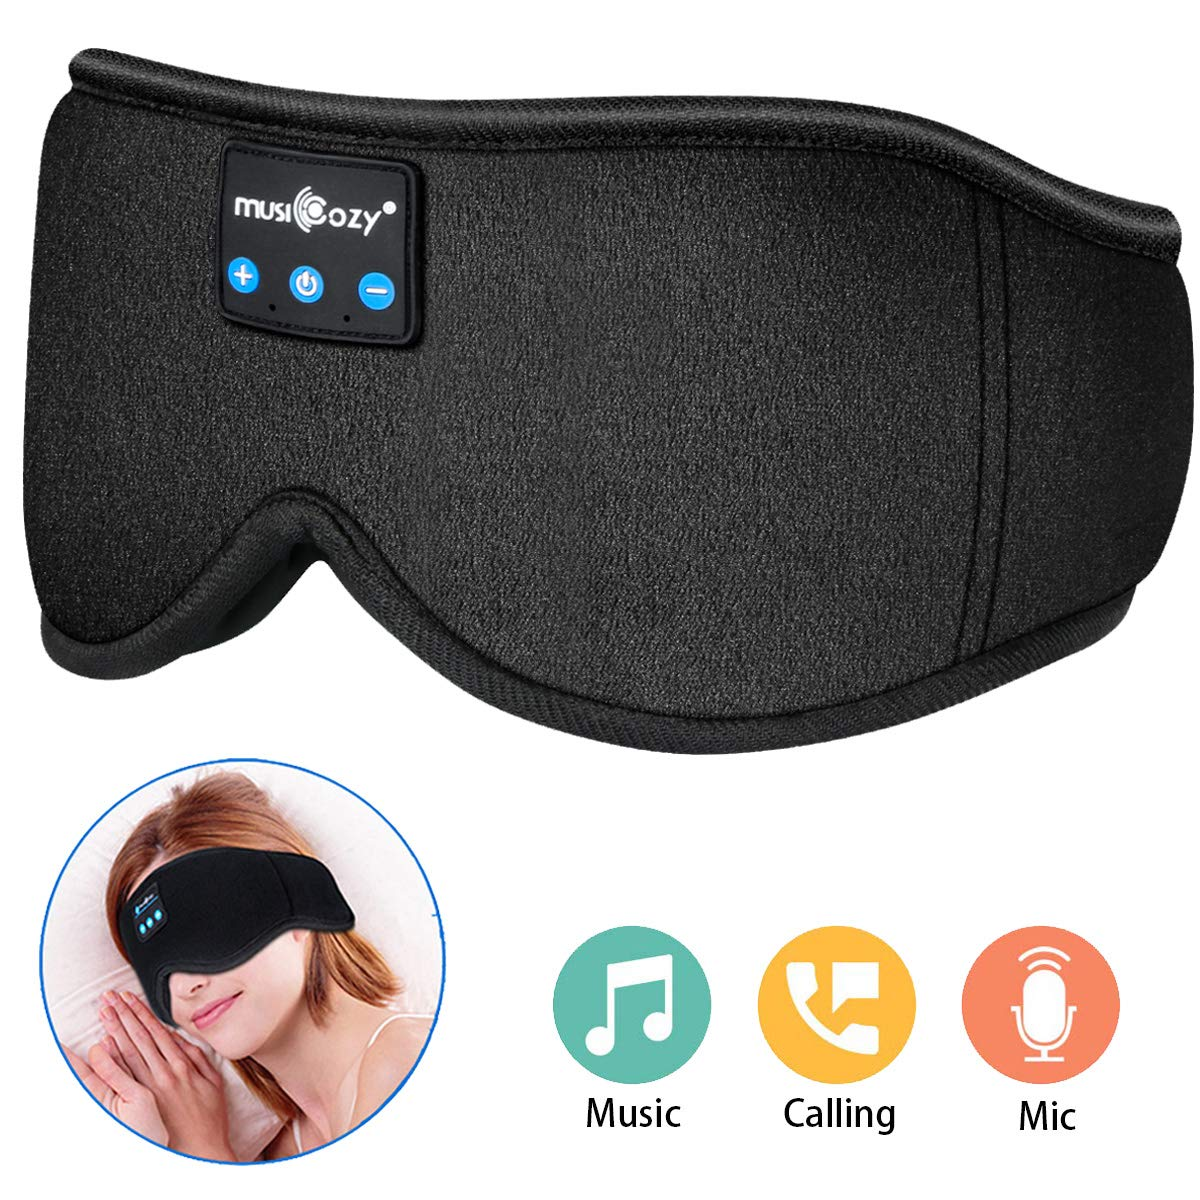 MUSICOZY Sleep Headphones, Bluetooth Sleep Mask Eye Mask with Headphones for Sleeping - Built-in HD Speakers and Microphone, Perfect for Travel, Sleeping, Meditation and Insomnia by MUSICOZY